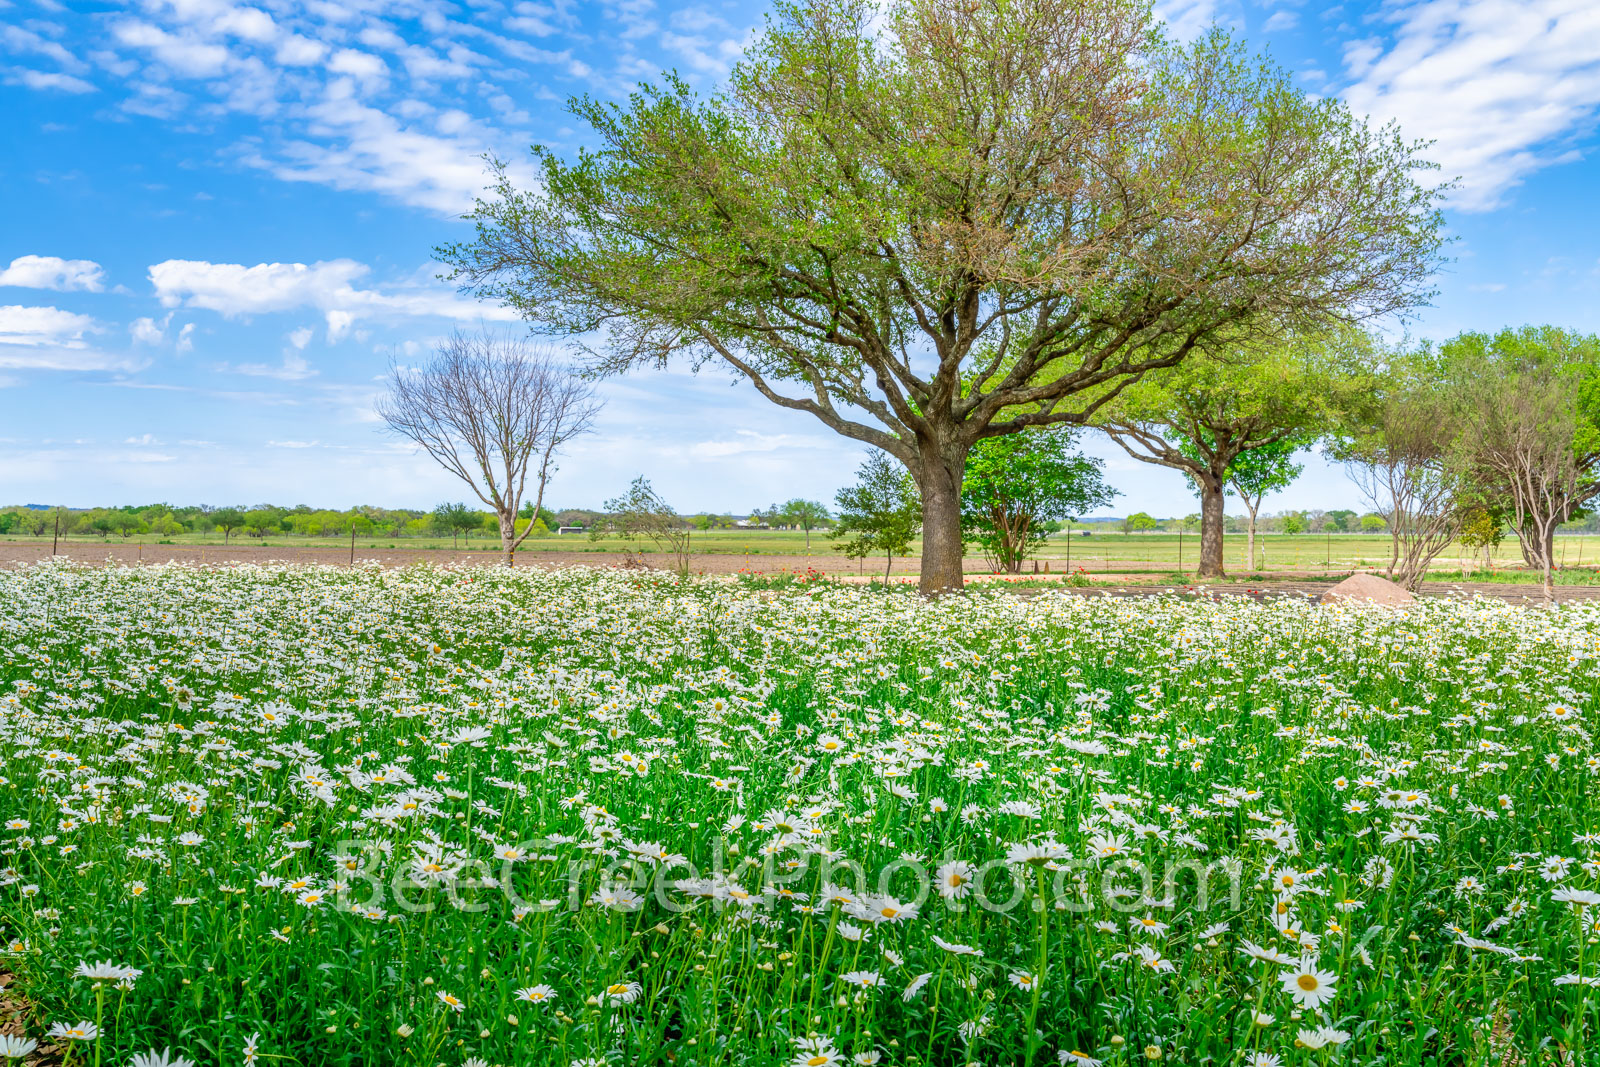 Field of Daisy Wildflower Landscape - This was a great field of ox-eyed daisy with just a few trees, a nice blue sky and white...